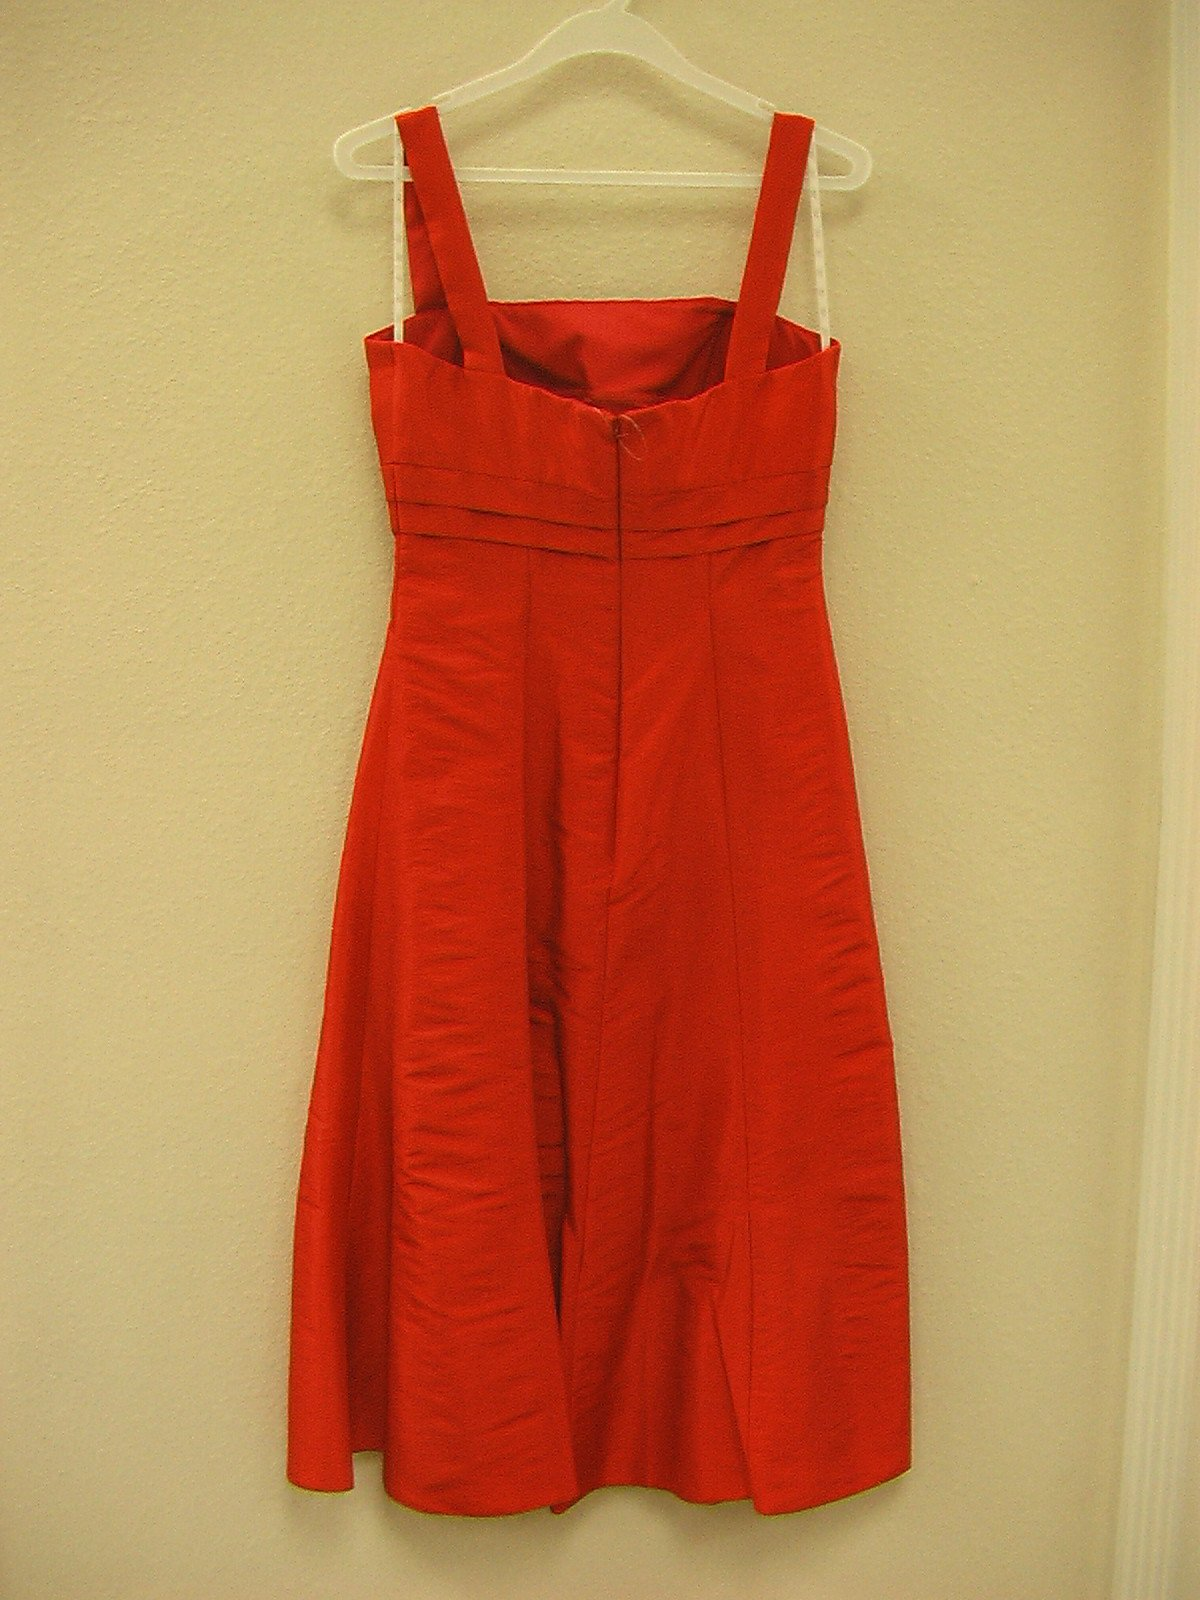 Jasmine B2 B2041 New Red size 28 Extra Long In Stock Bridesmaid Dress-NEW - Tom's Bridal